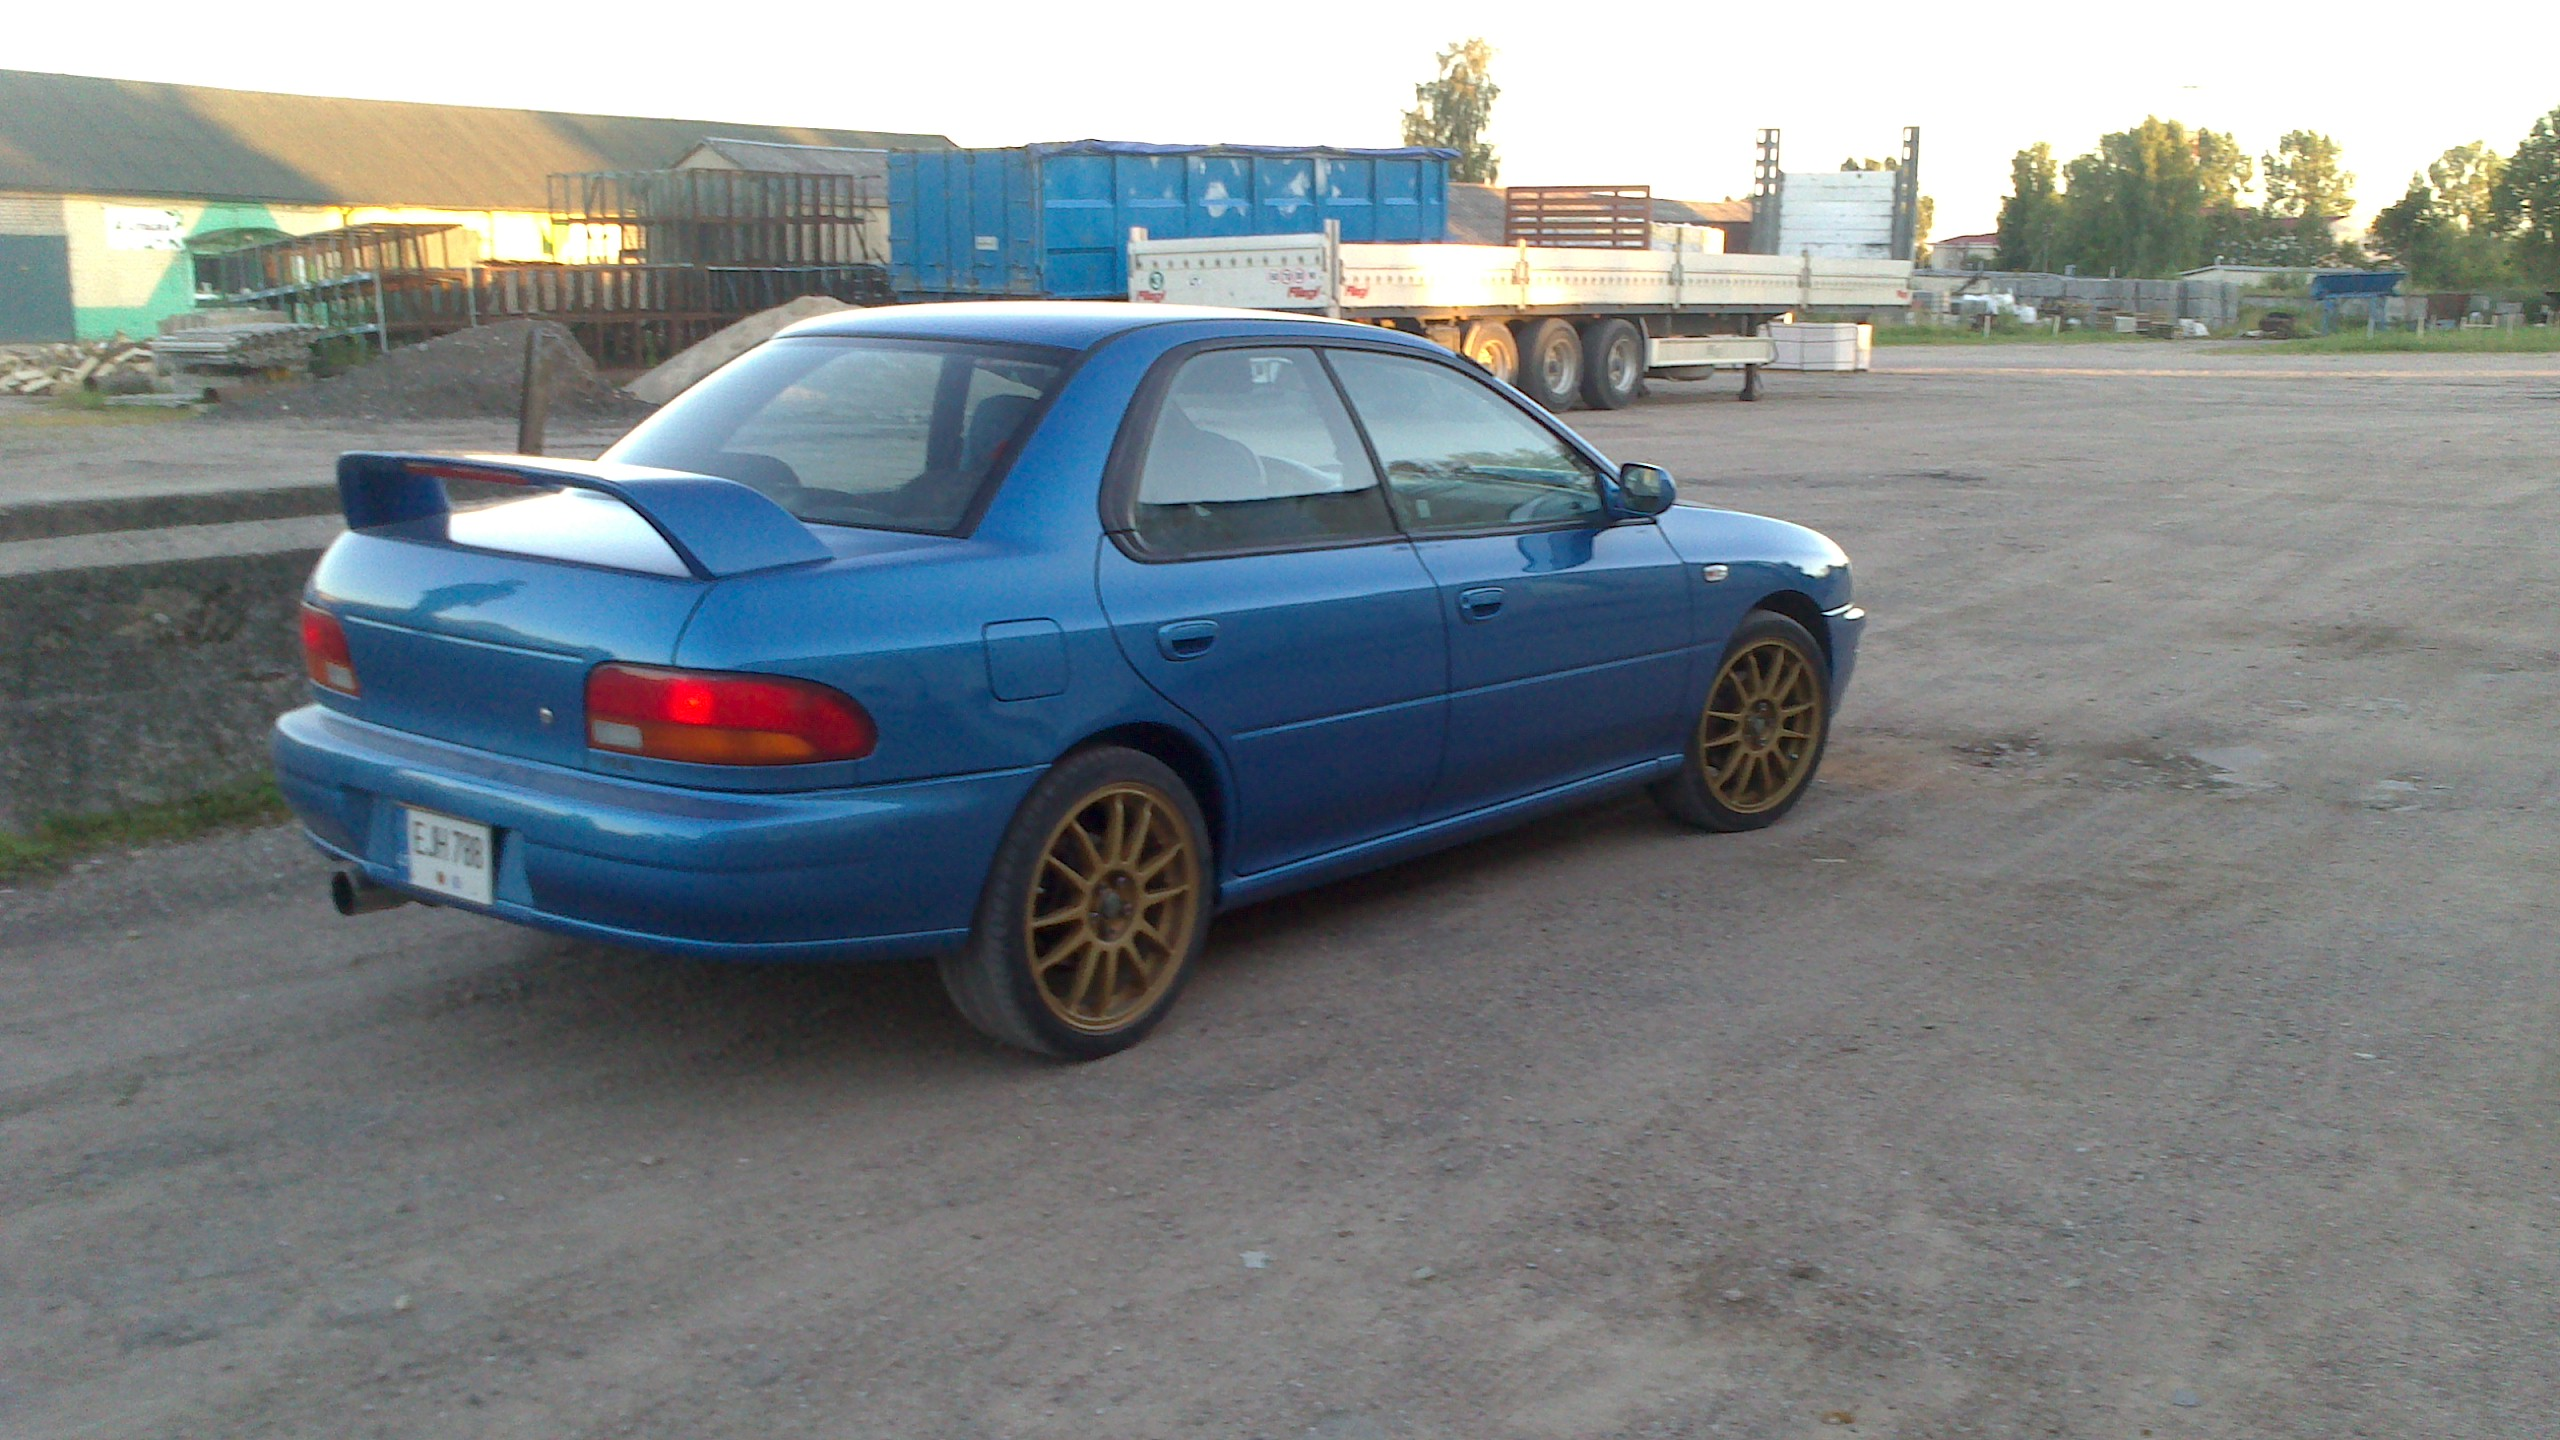 Performance Trackday Cars For Sale At: Subaru WRX RA Limited Edition LHD